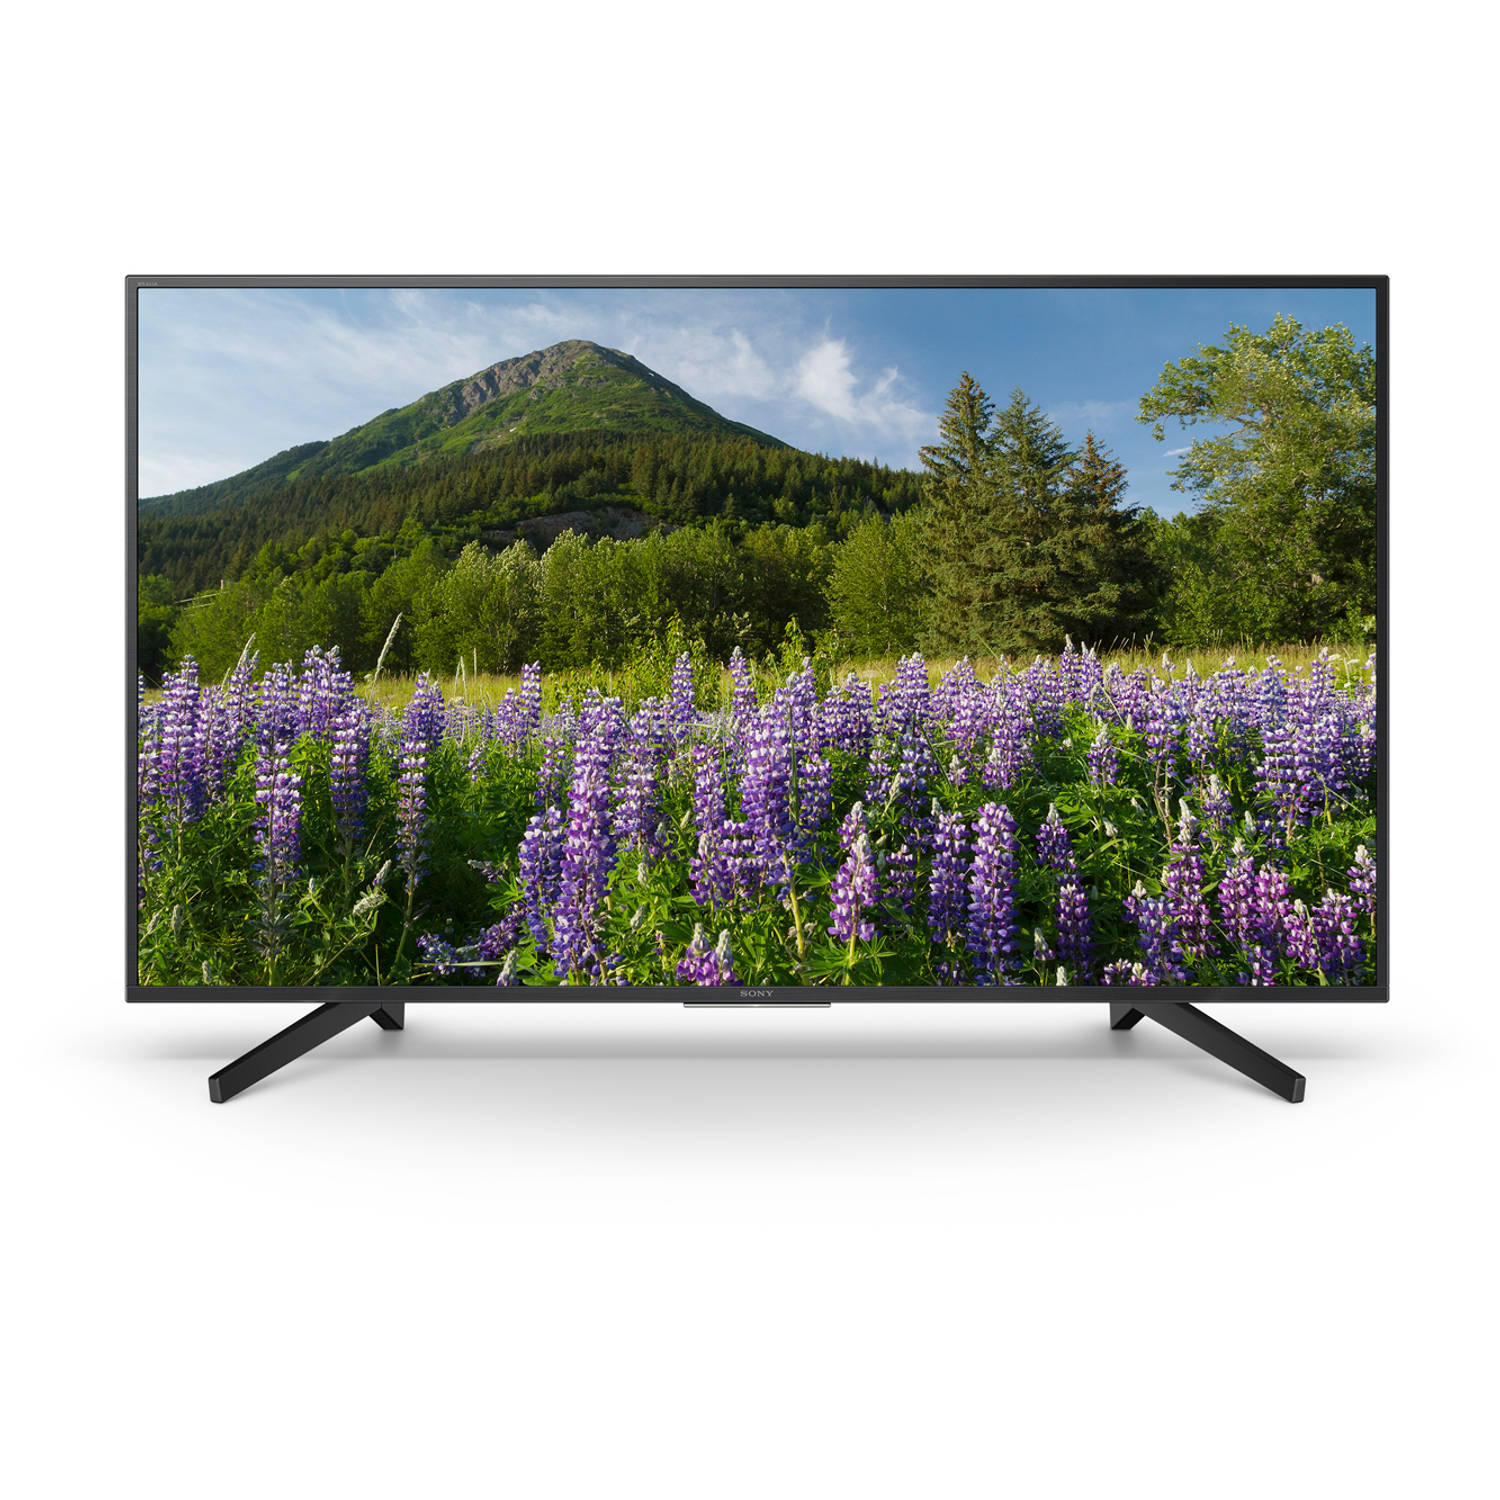 Sony KD55XF7000BAEP 4K Ultra HD TV